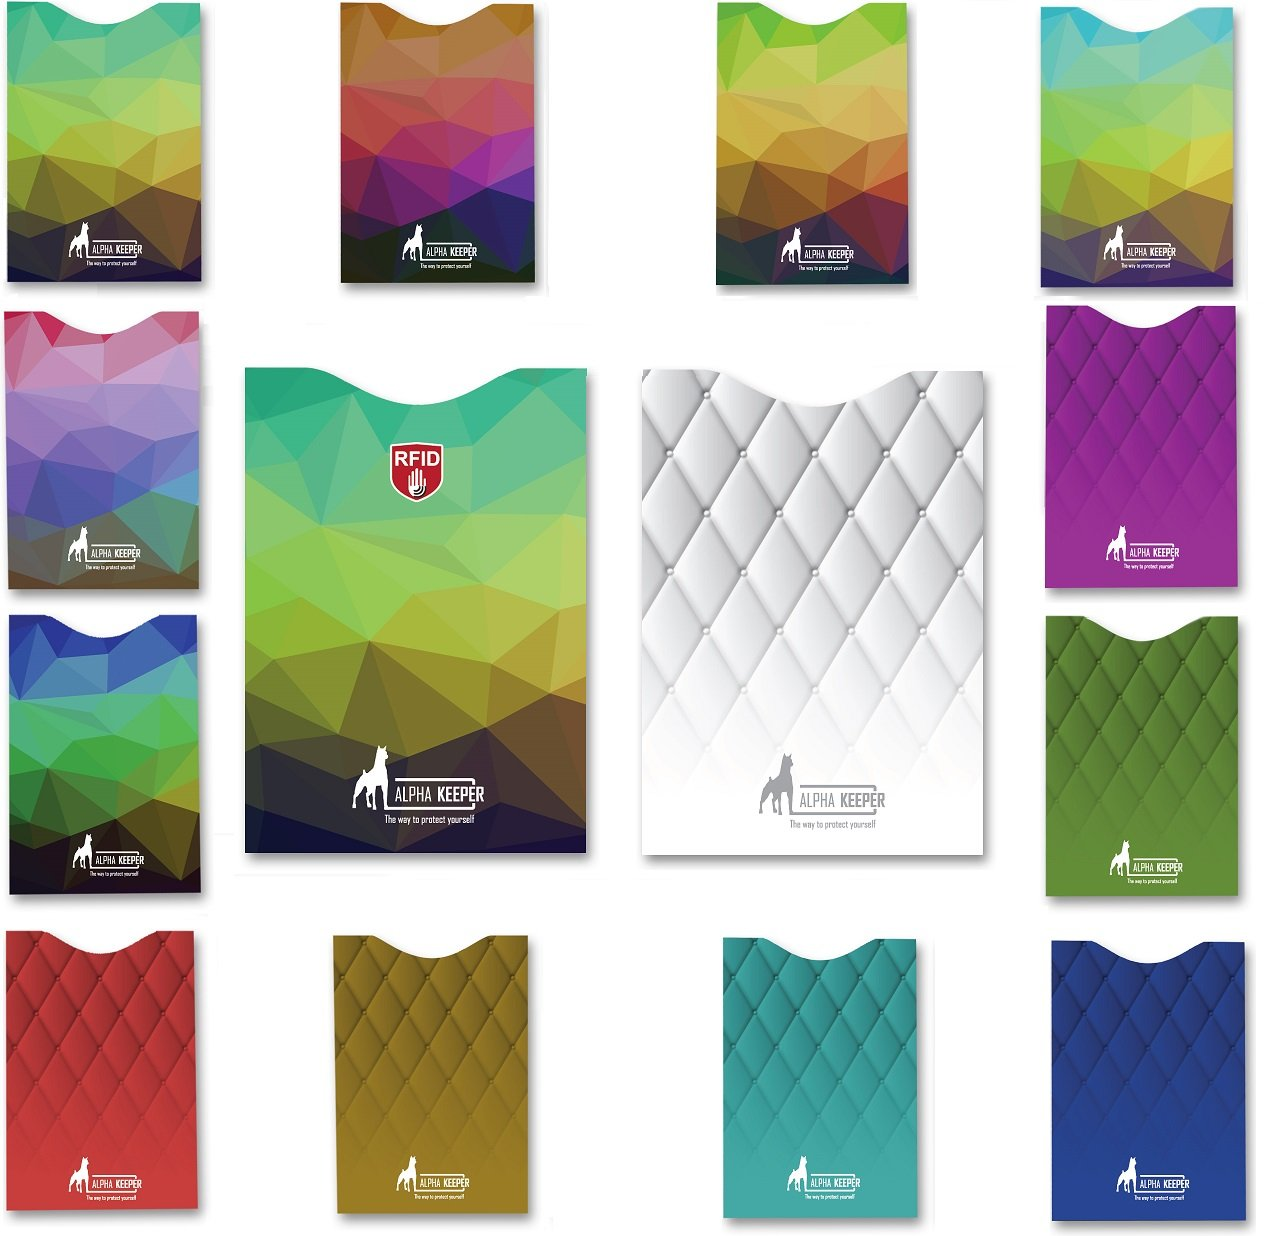 14 x RFID card protector Blocking Sleeves set of 12 x credit card protectors & 2 x Passport holder ,Unique exclusive stylish designs for Men & Women wallet Secure Identity Theft Protection, MUST BE with any traveler Alpha Keeper